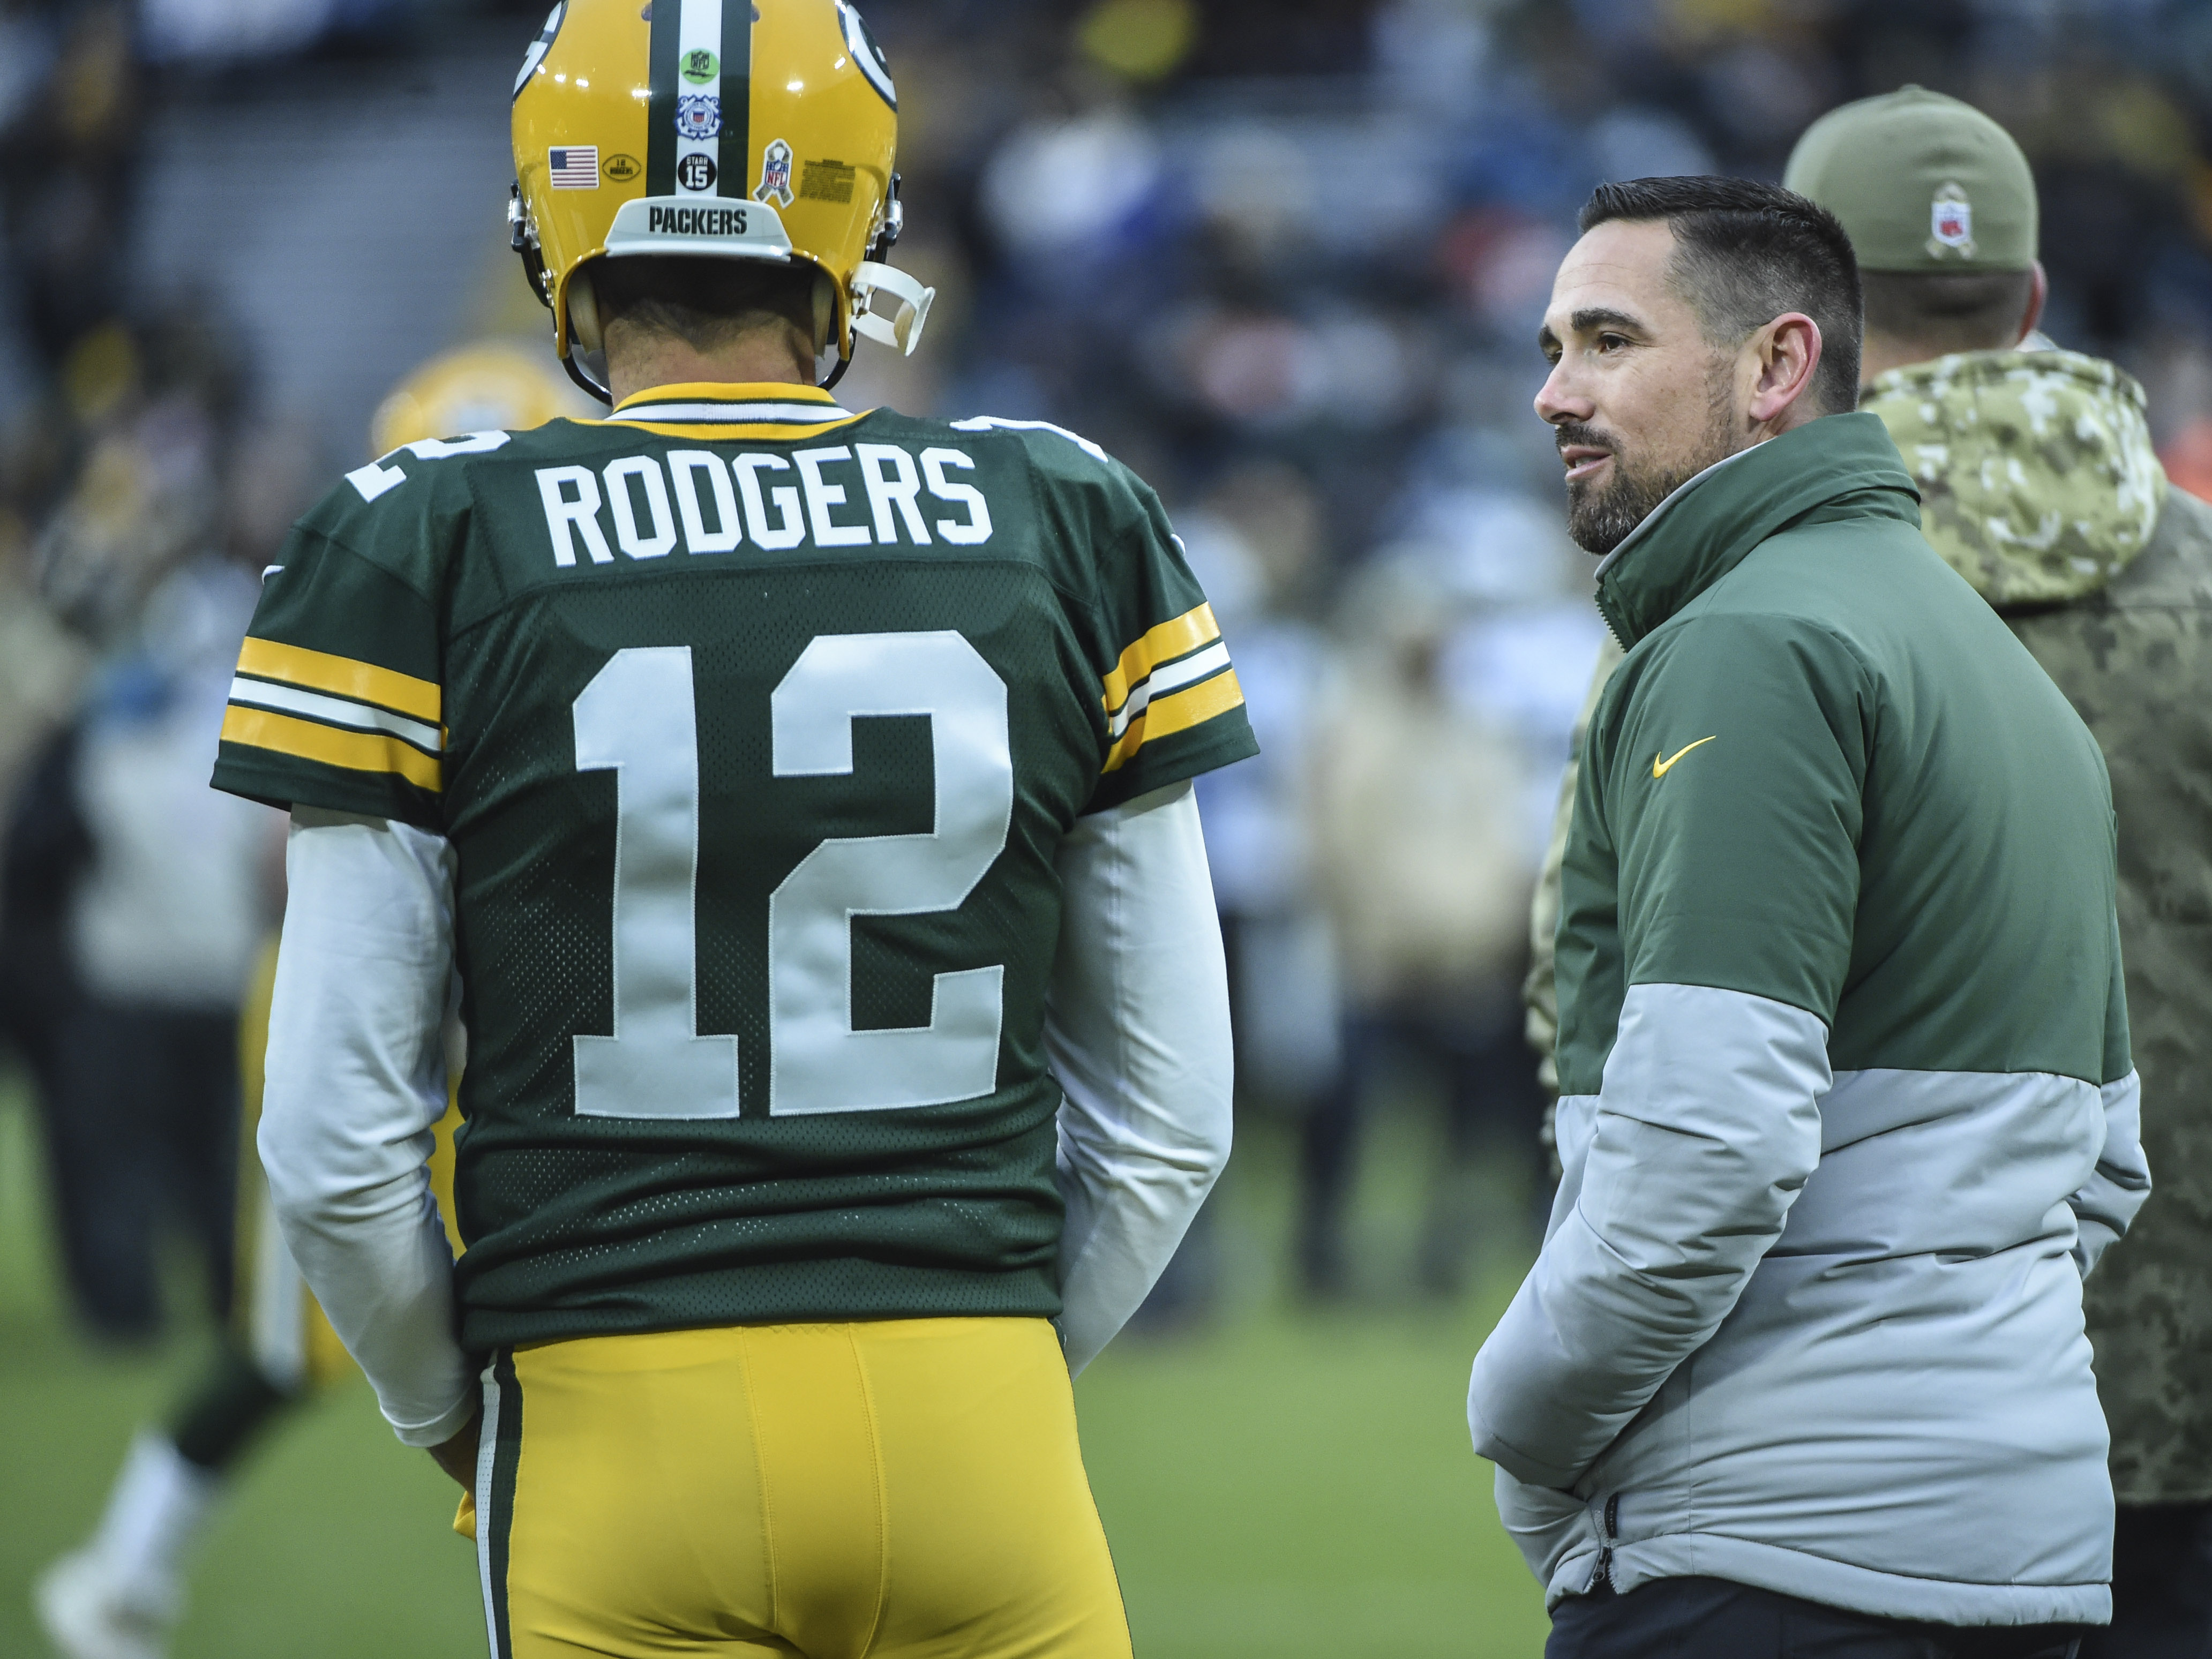 Five Reasons Aaron Rodgers Will Make a Jump in His Second Year in Matt LaFleur's System